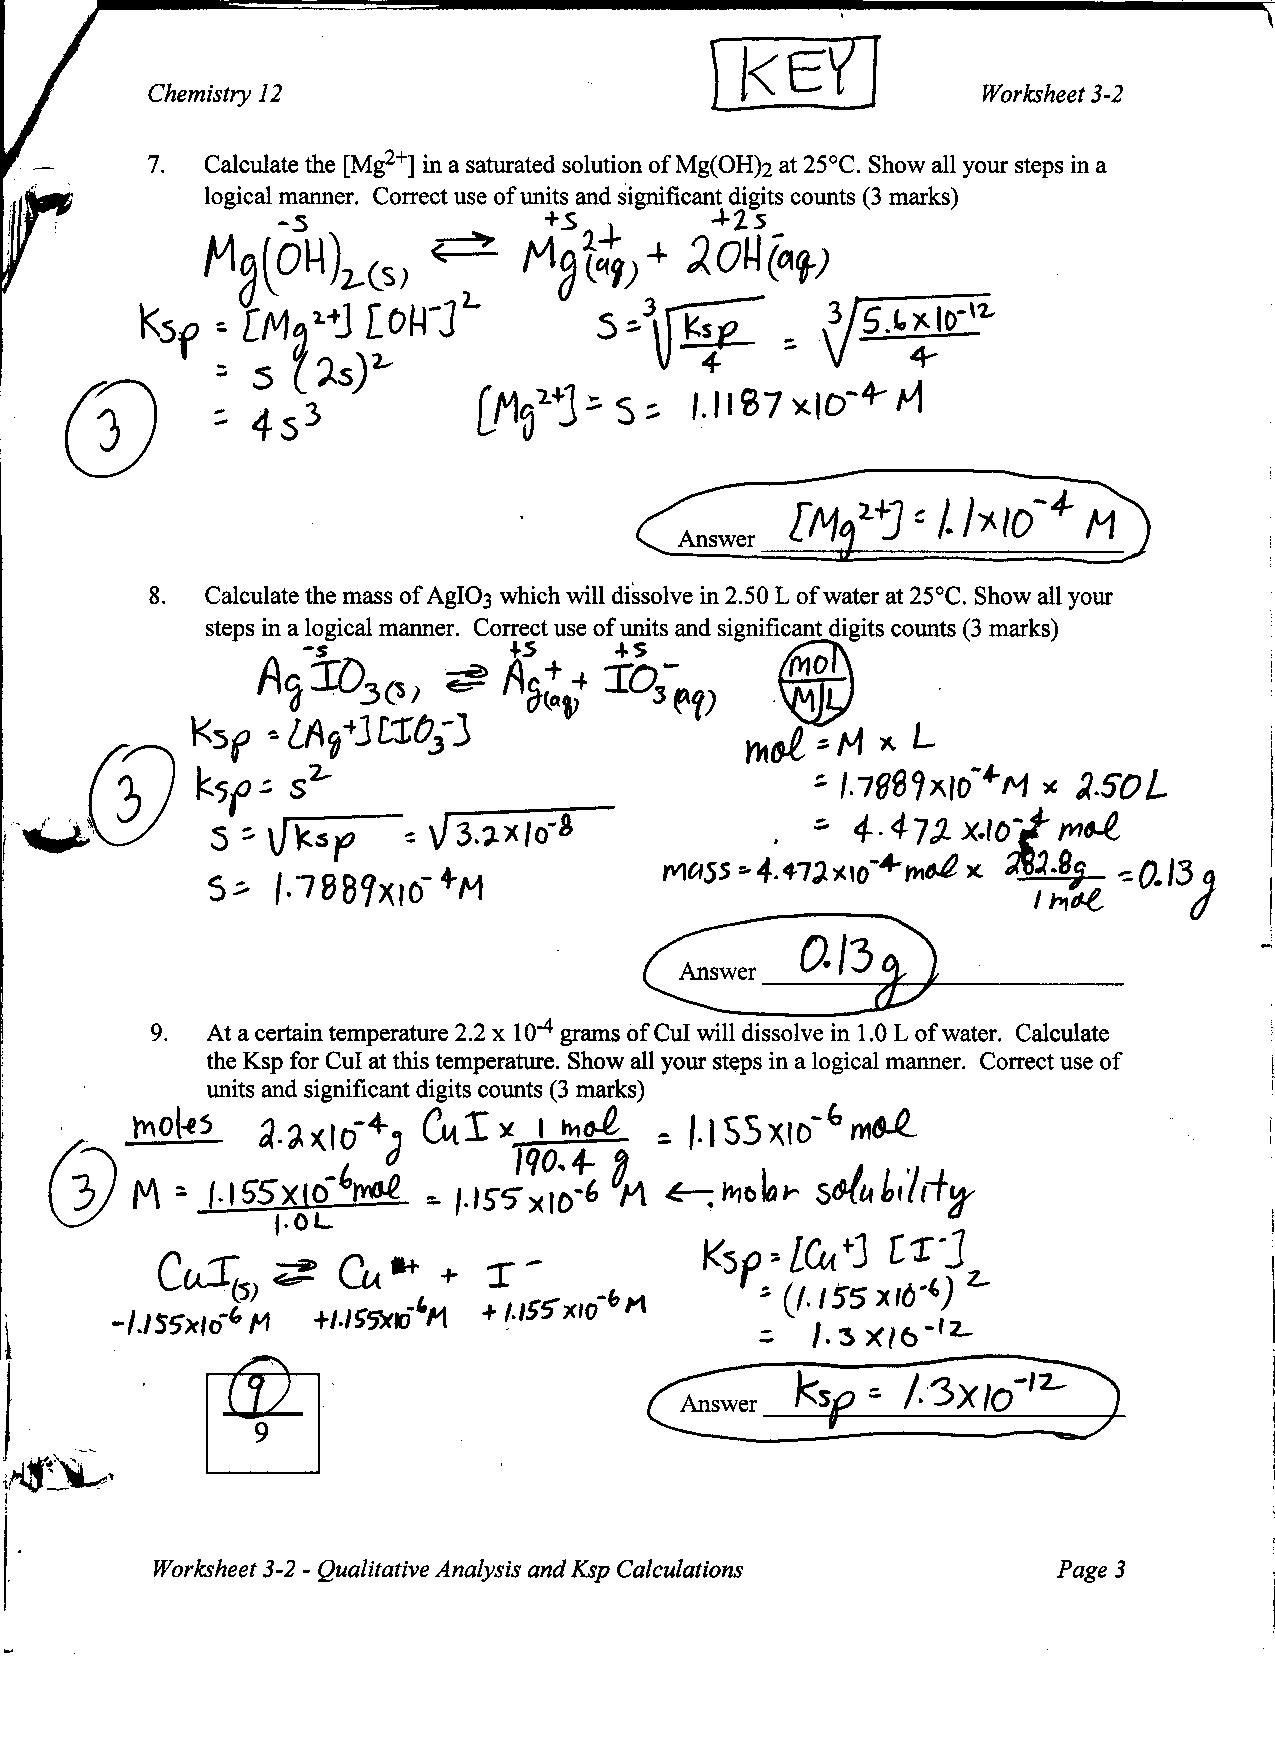 Solubility Graph Worksheet Answers Worksheet solubility Graphs Answers Worksheet List